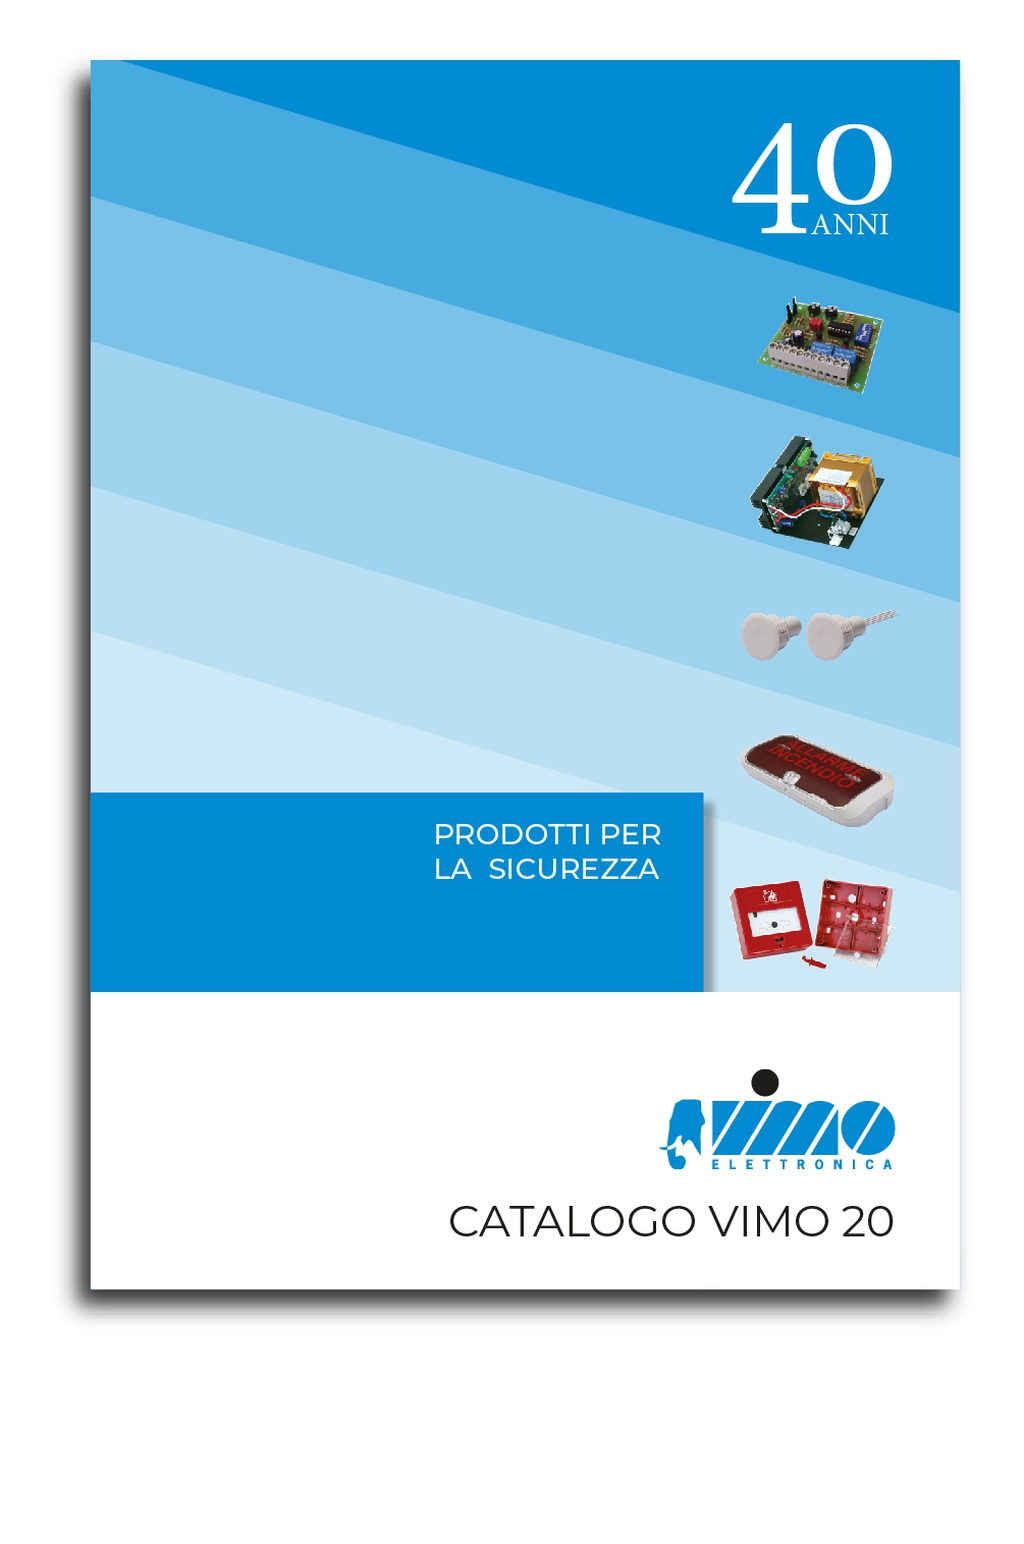 Catalogue Vimo 2020